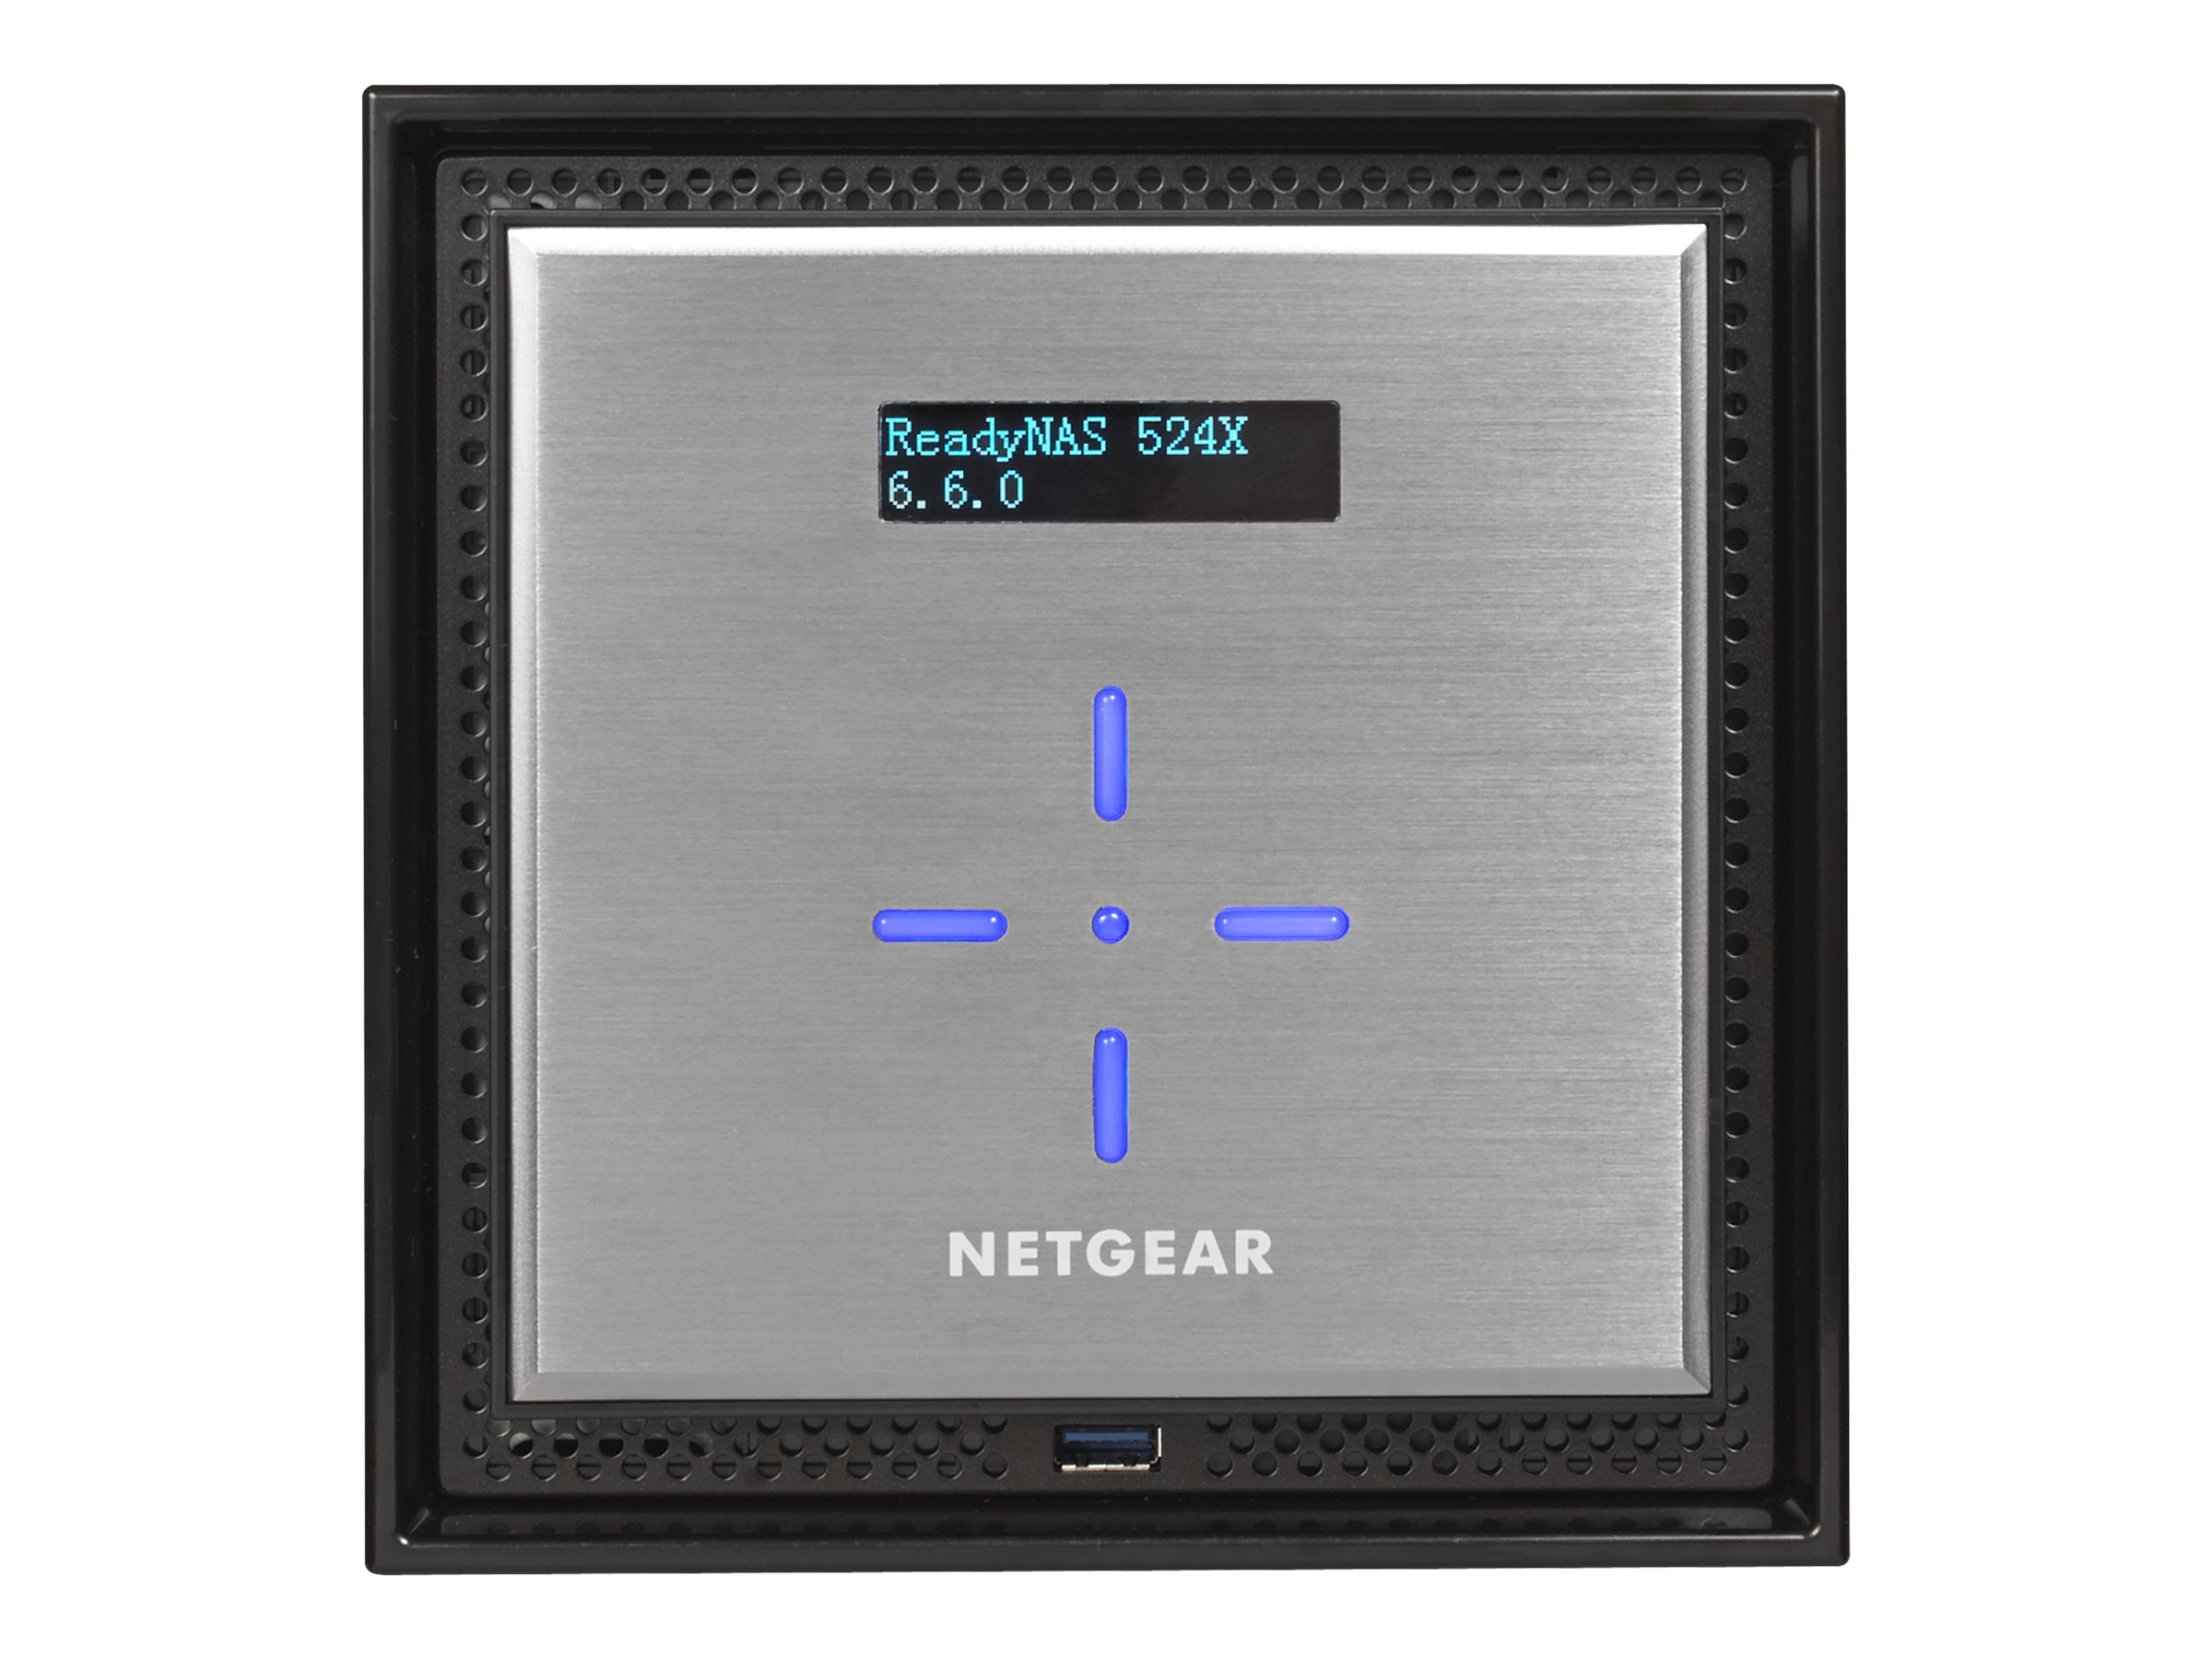 Netgear ReadyNAS 524X Premium Performance Business Data Storage - Diskless